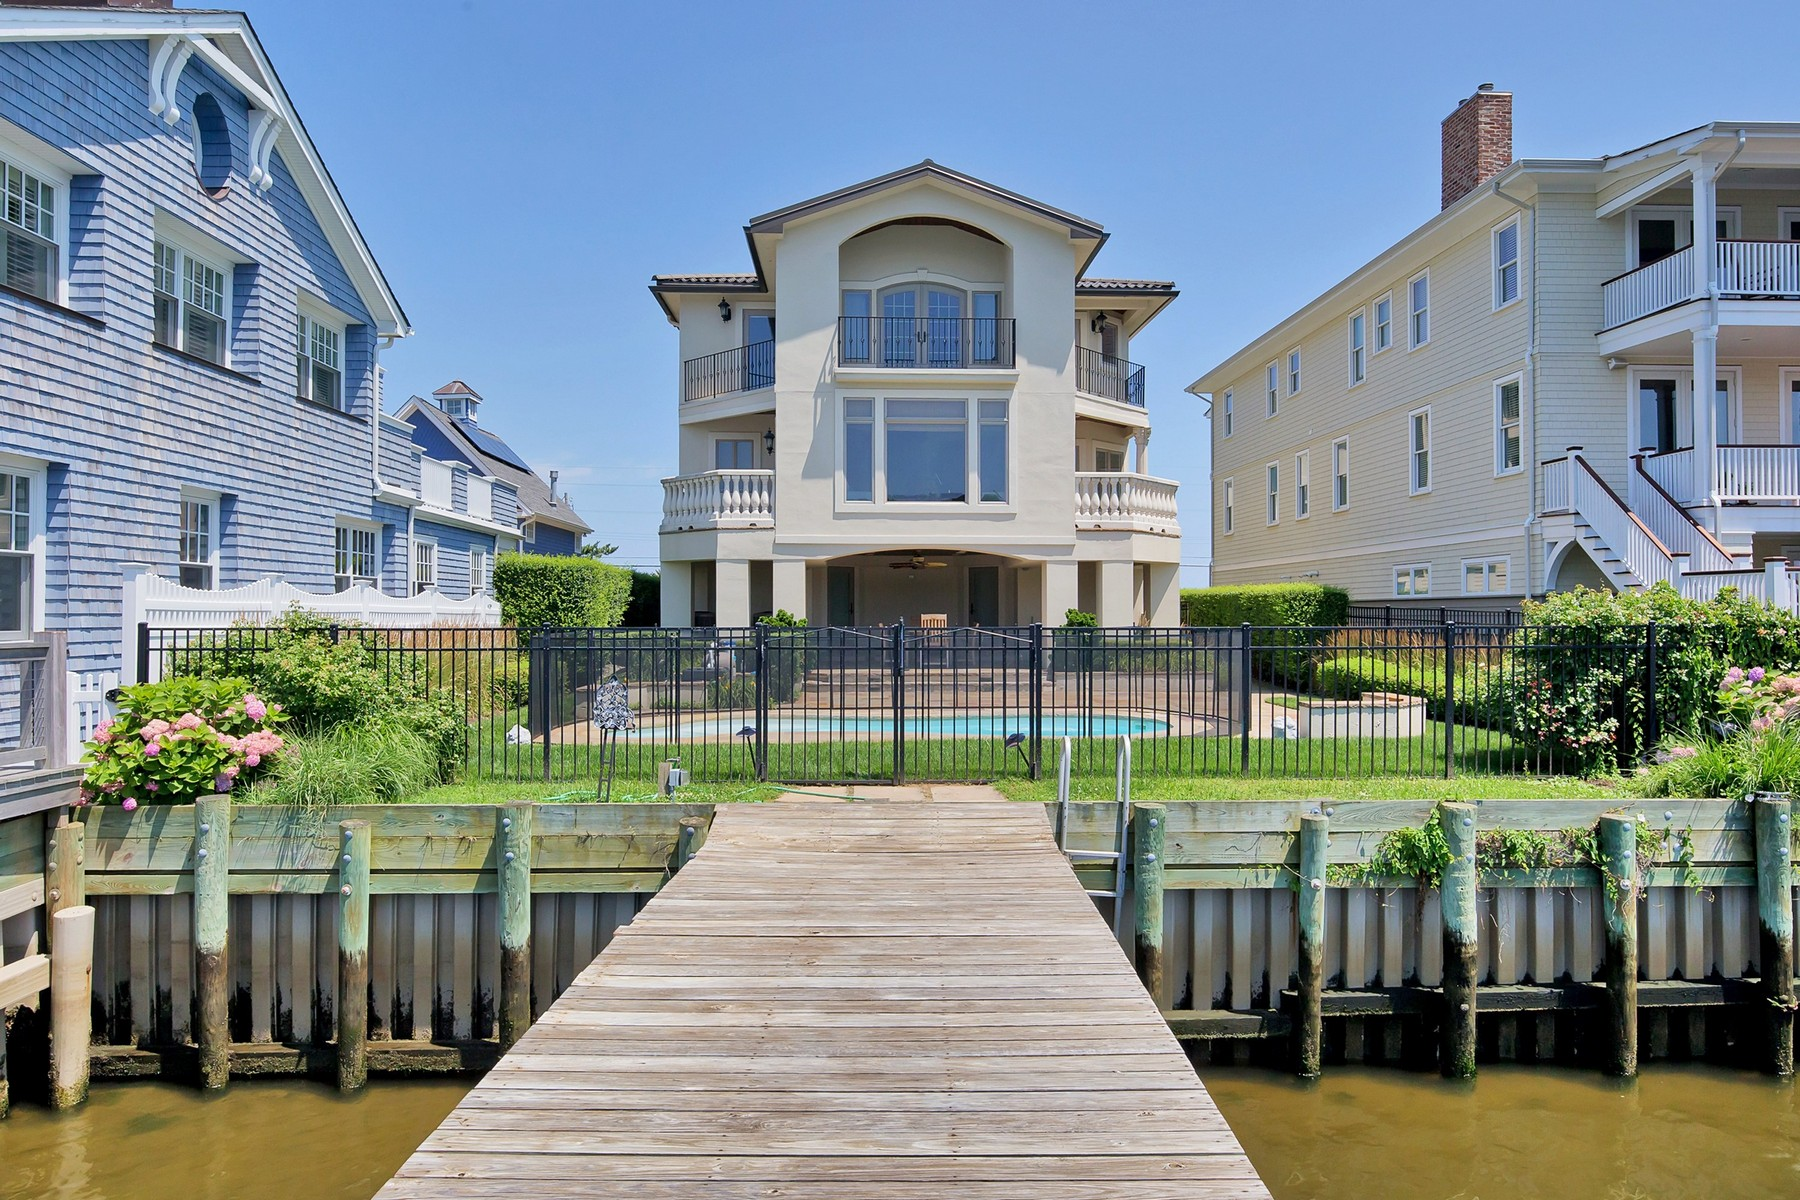 Single Family Homes for Sale at 314 Ocean Ave., Sea Bright 314 Ocean Ave. Sea Bright, New Jersey 07760 United States